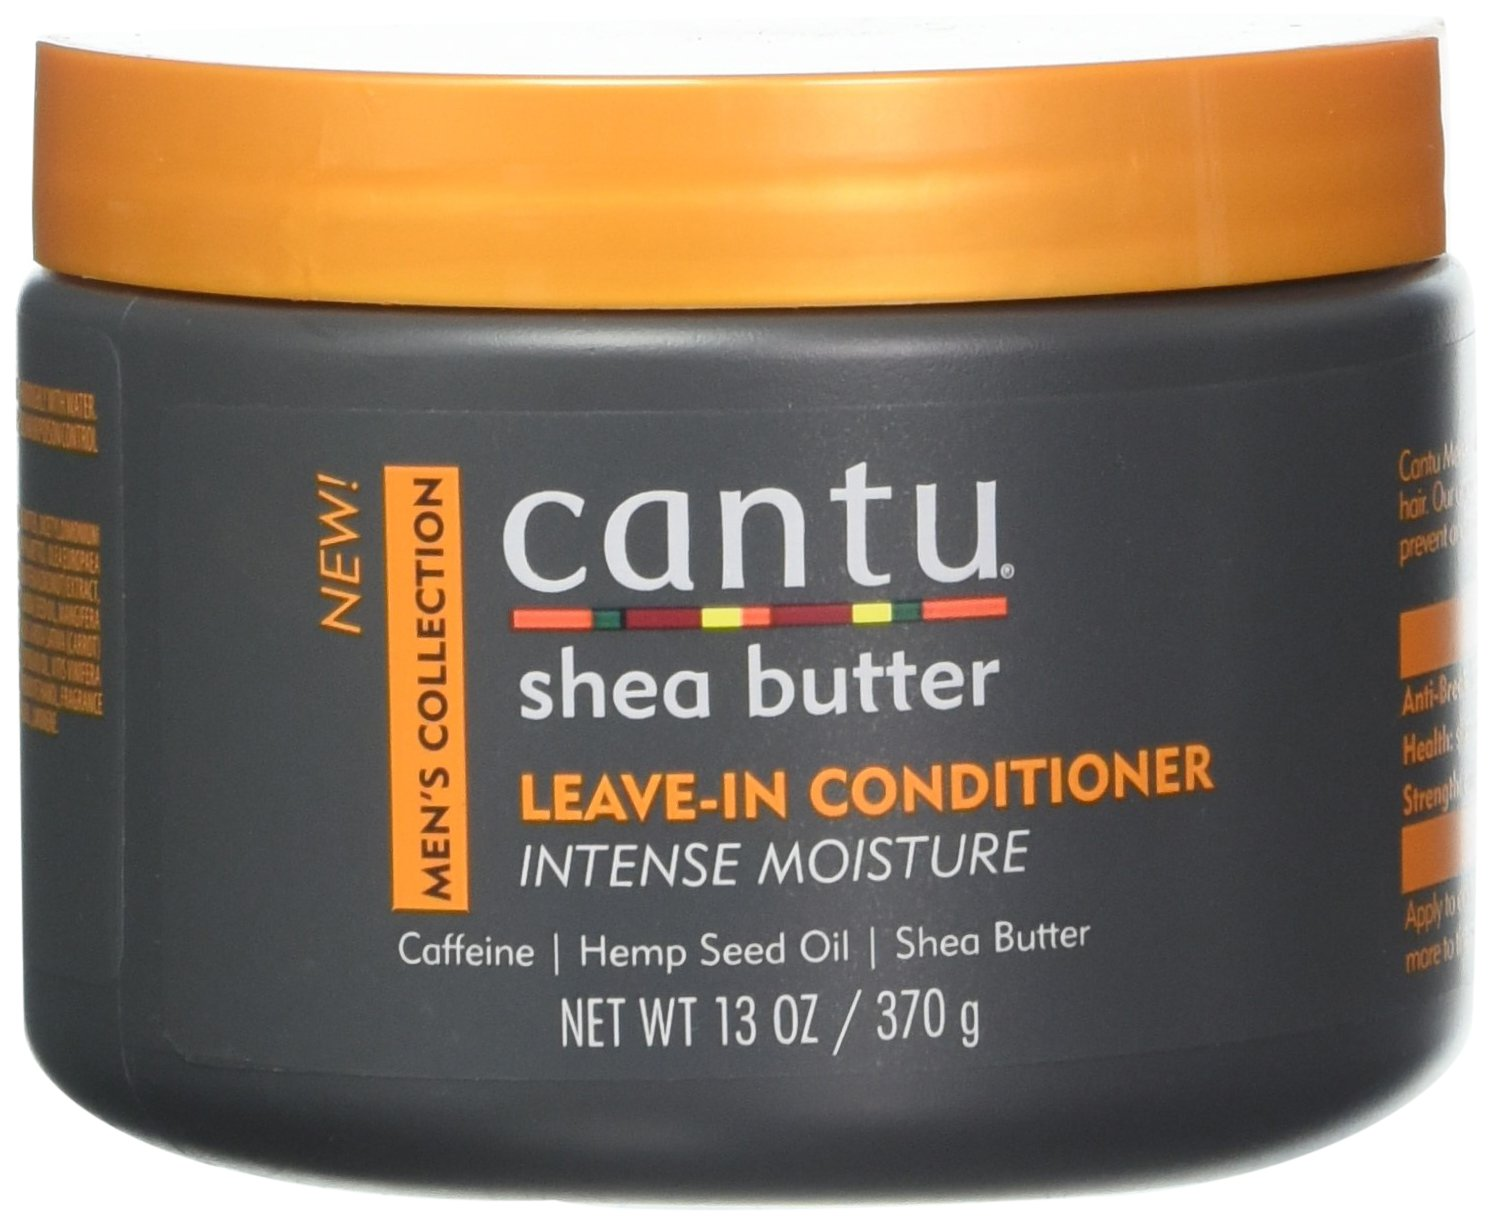 Cantu Shea Butter Men's Collection Leave in Conditioner, 13 oz. Dr. Teals 07677-12/3PK